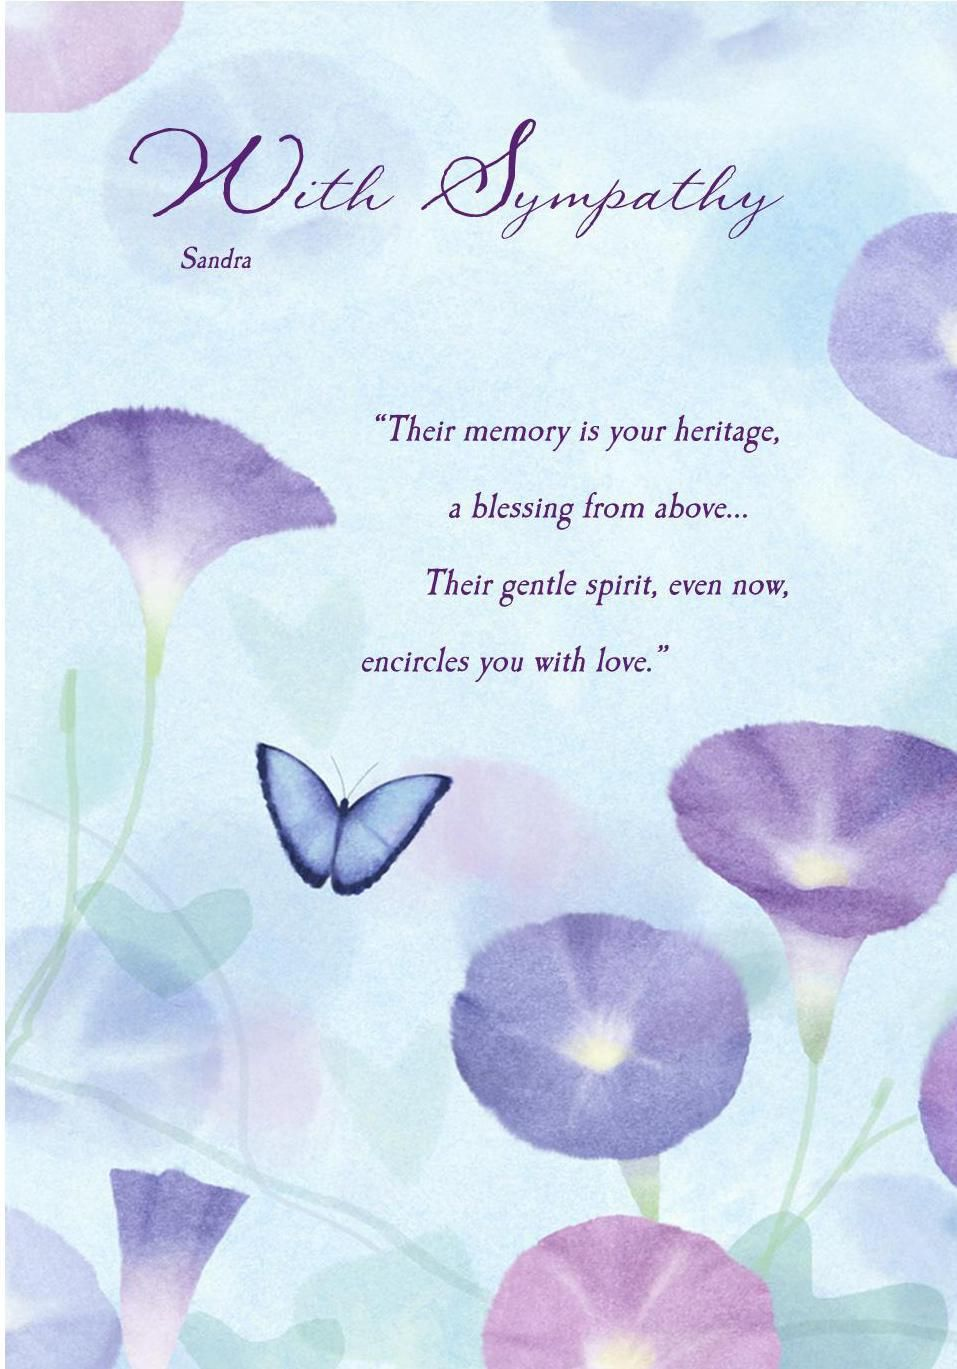 deepest sympathy messages sympathy card butterfly sympathy card any name verse inside reads - Deepest Sympathy Card